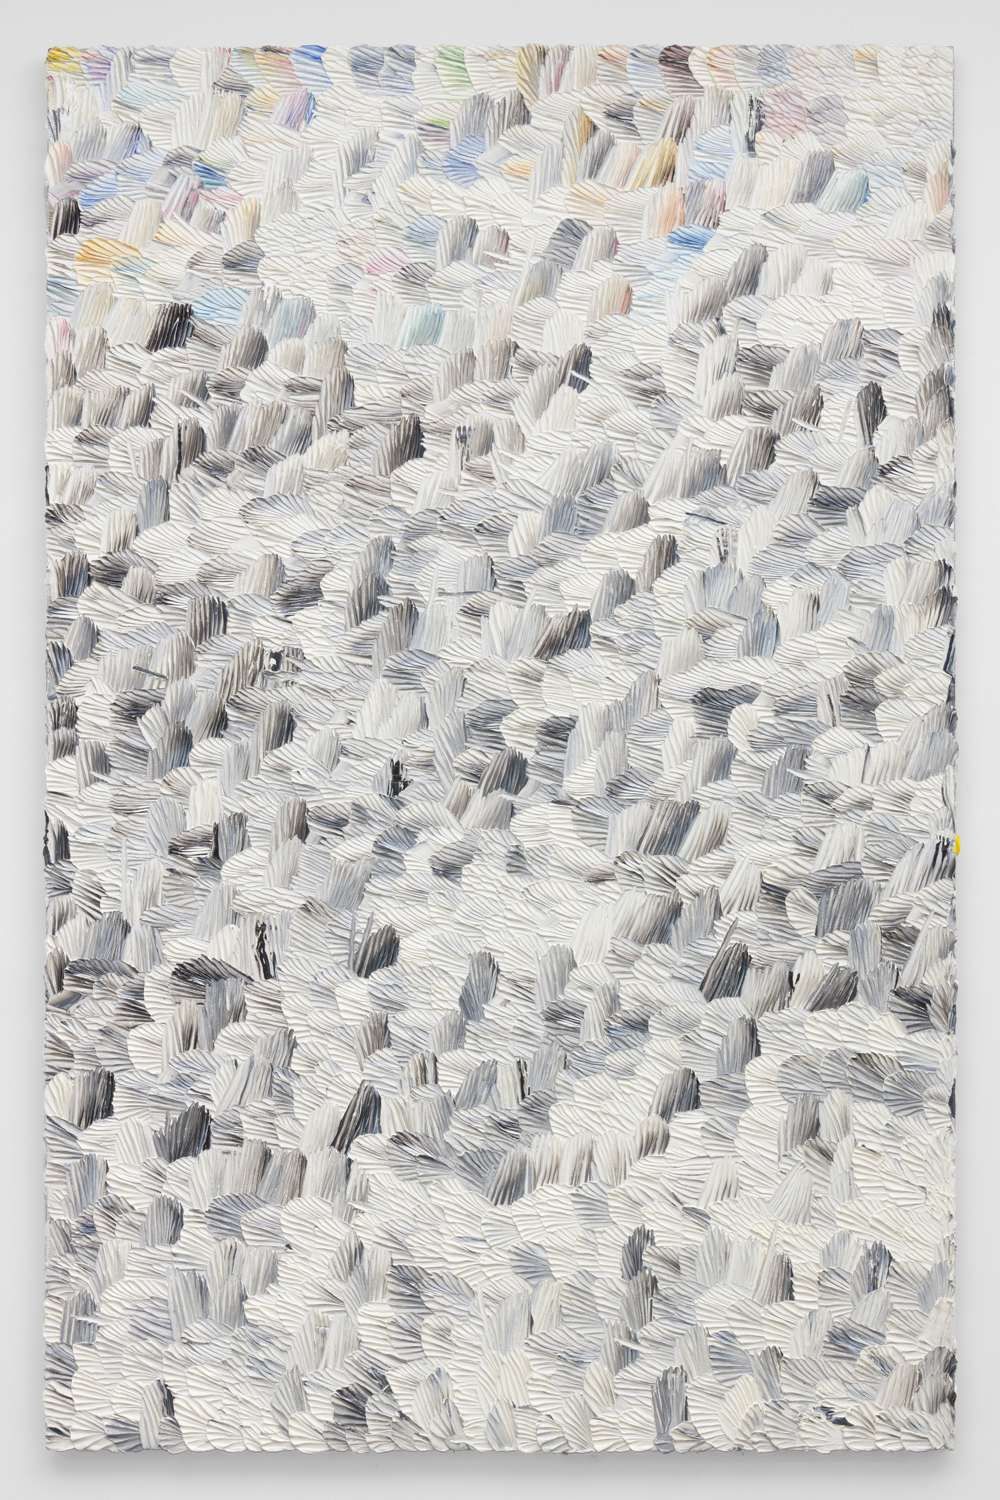 Dashiell Manley,  e.f.w. (t.s.f.n.) , 2018, Oil on linen. 82 x 53 inches